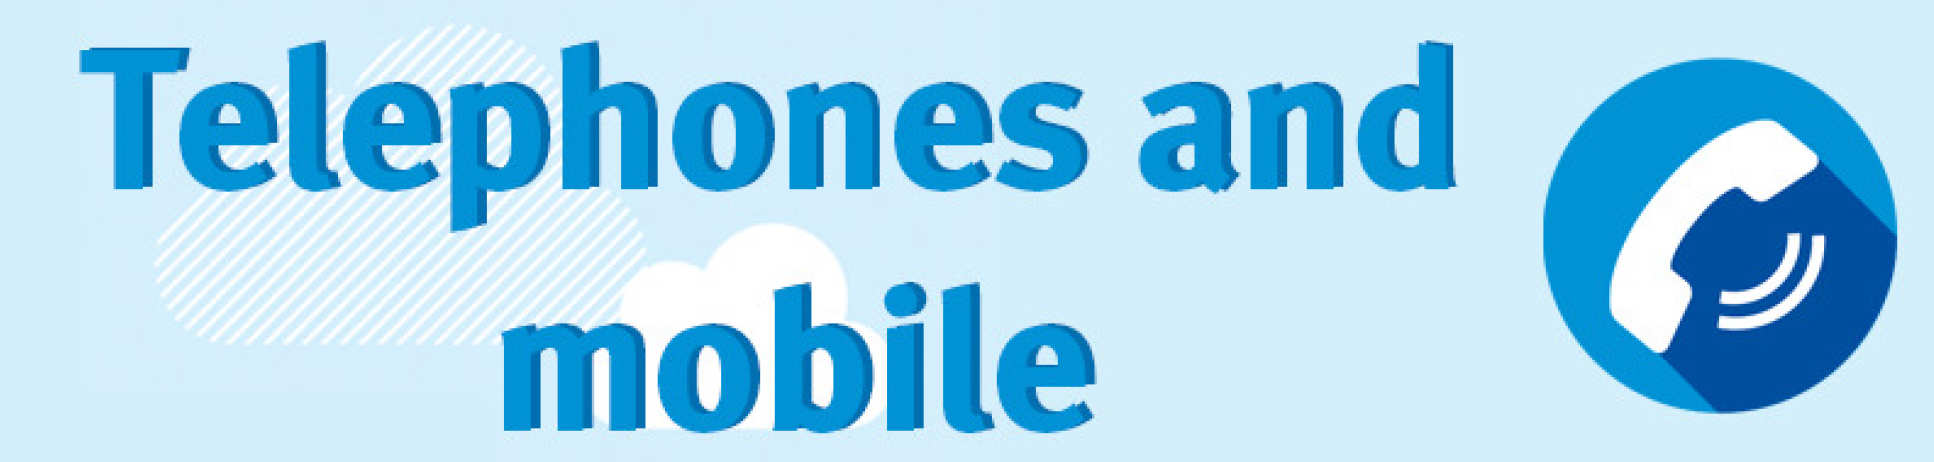 telephone and mobile banner